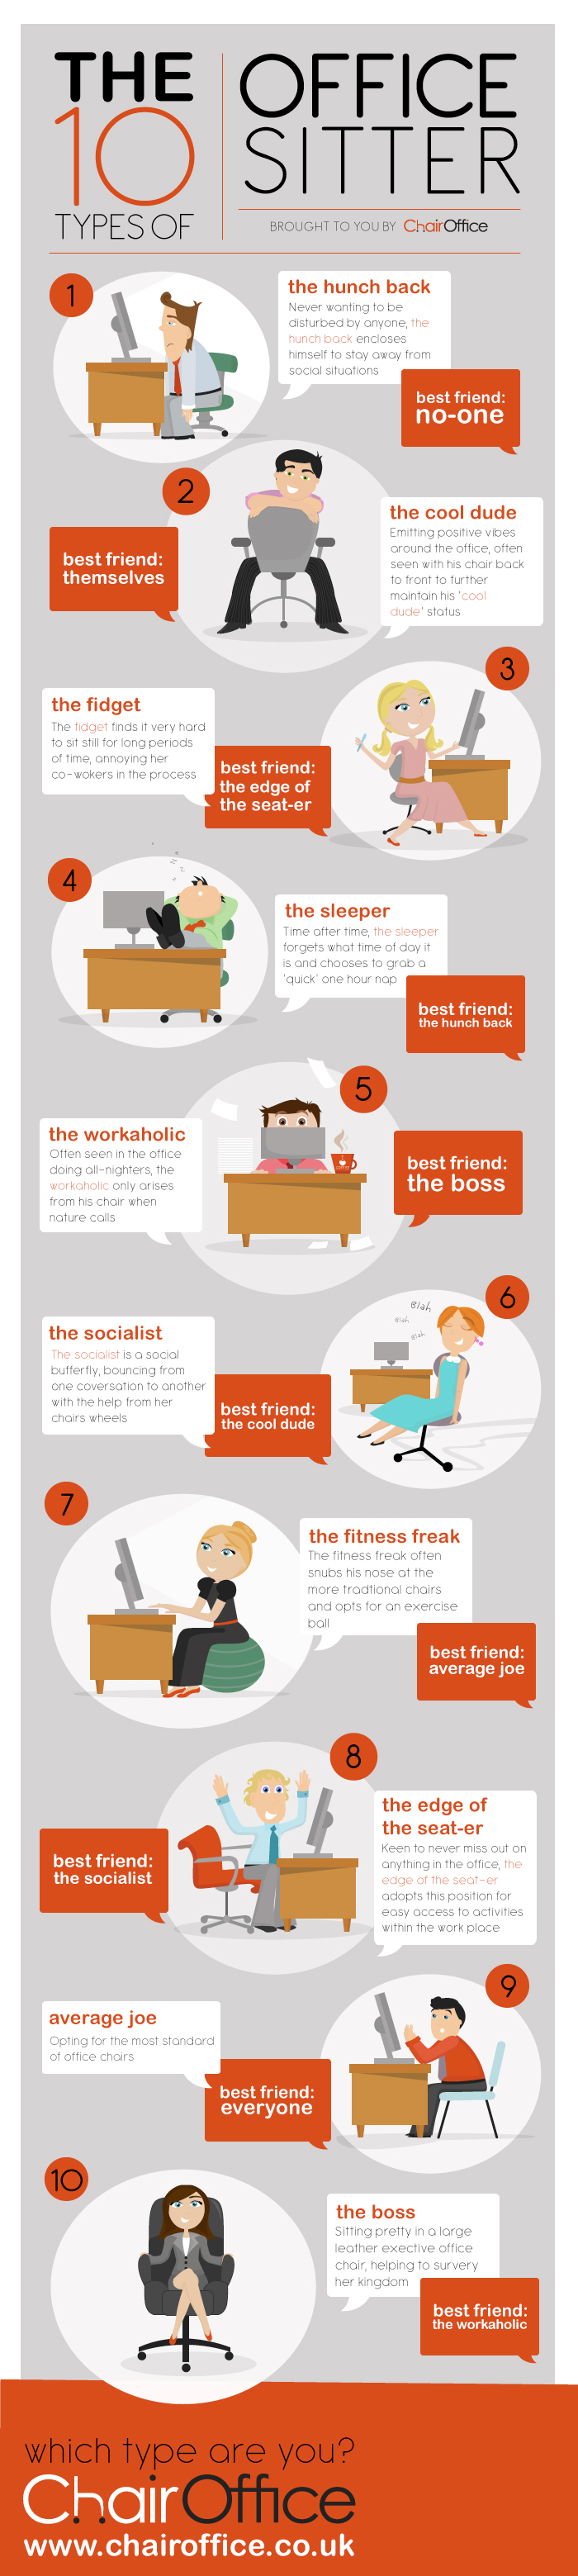 Sitting and You-Infographic